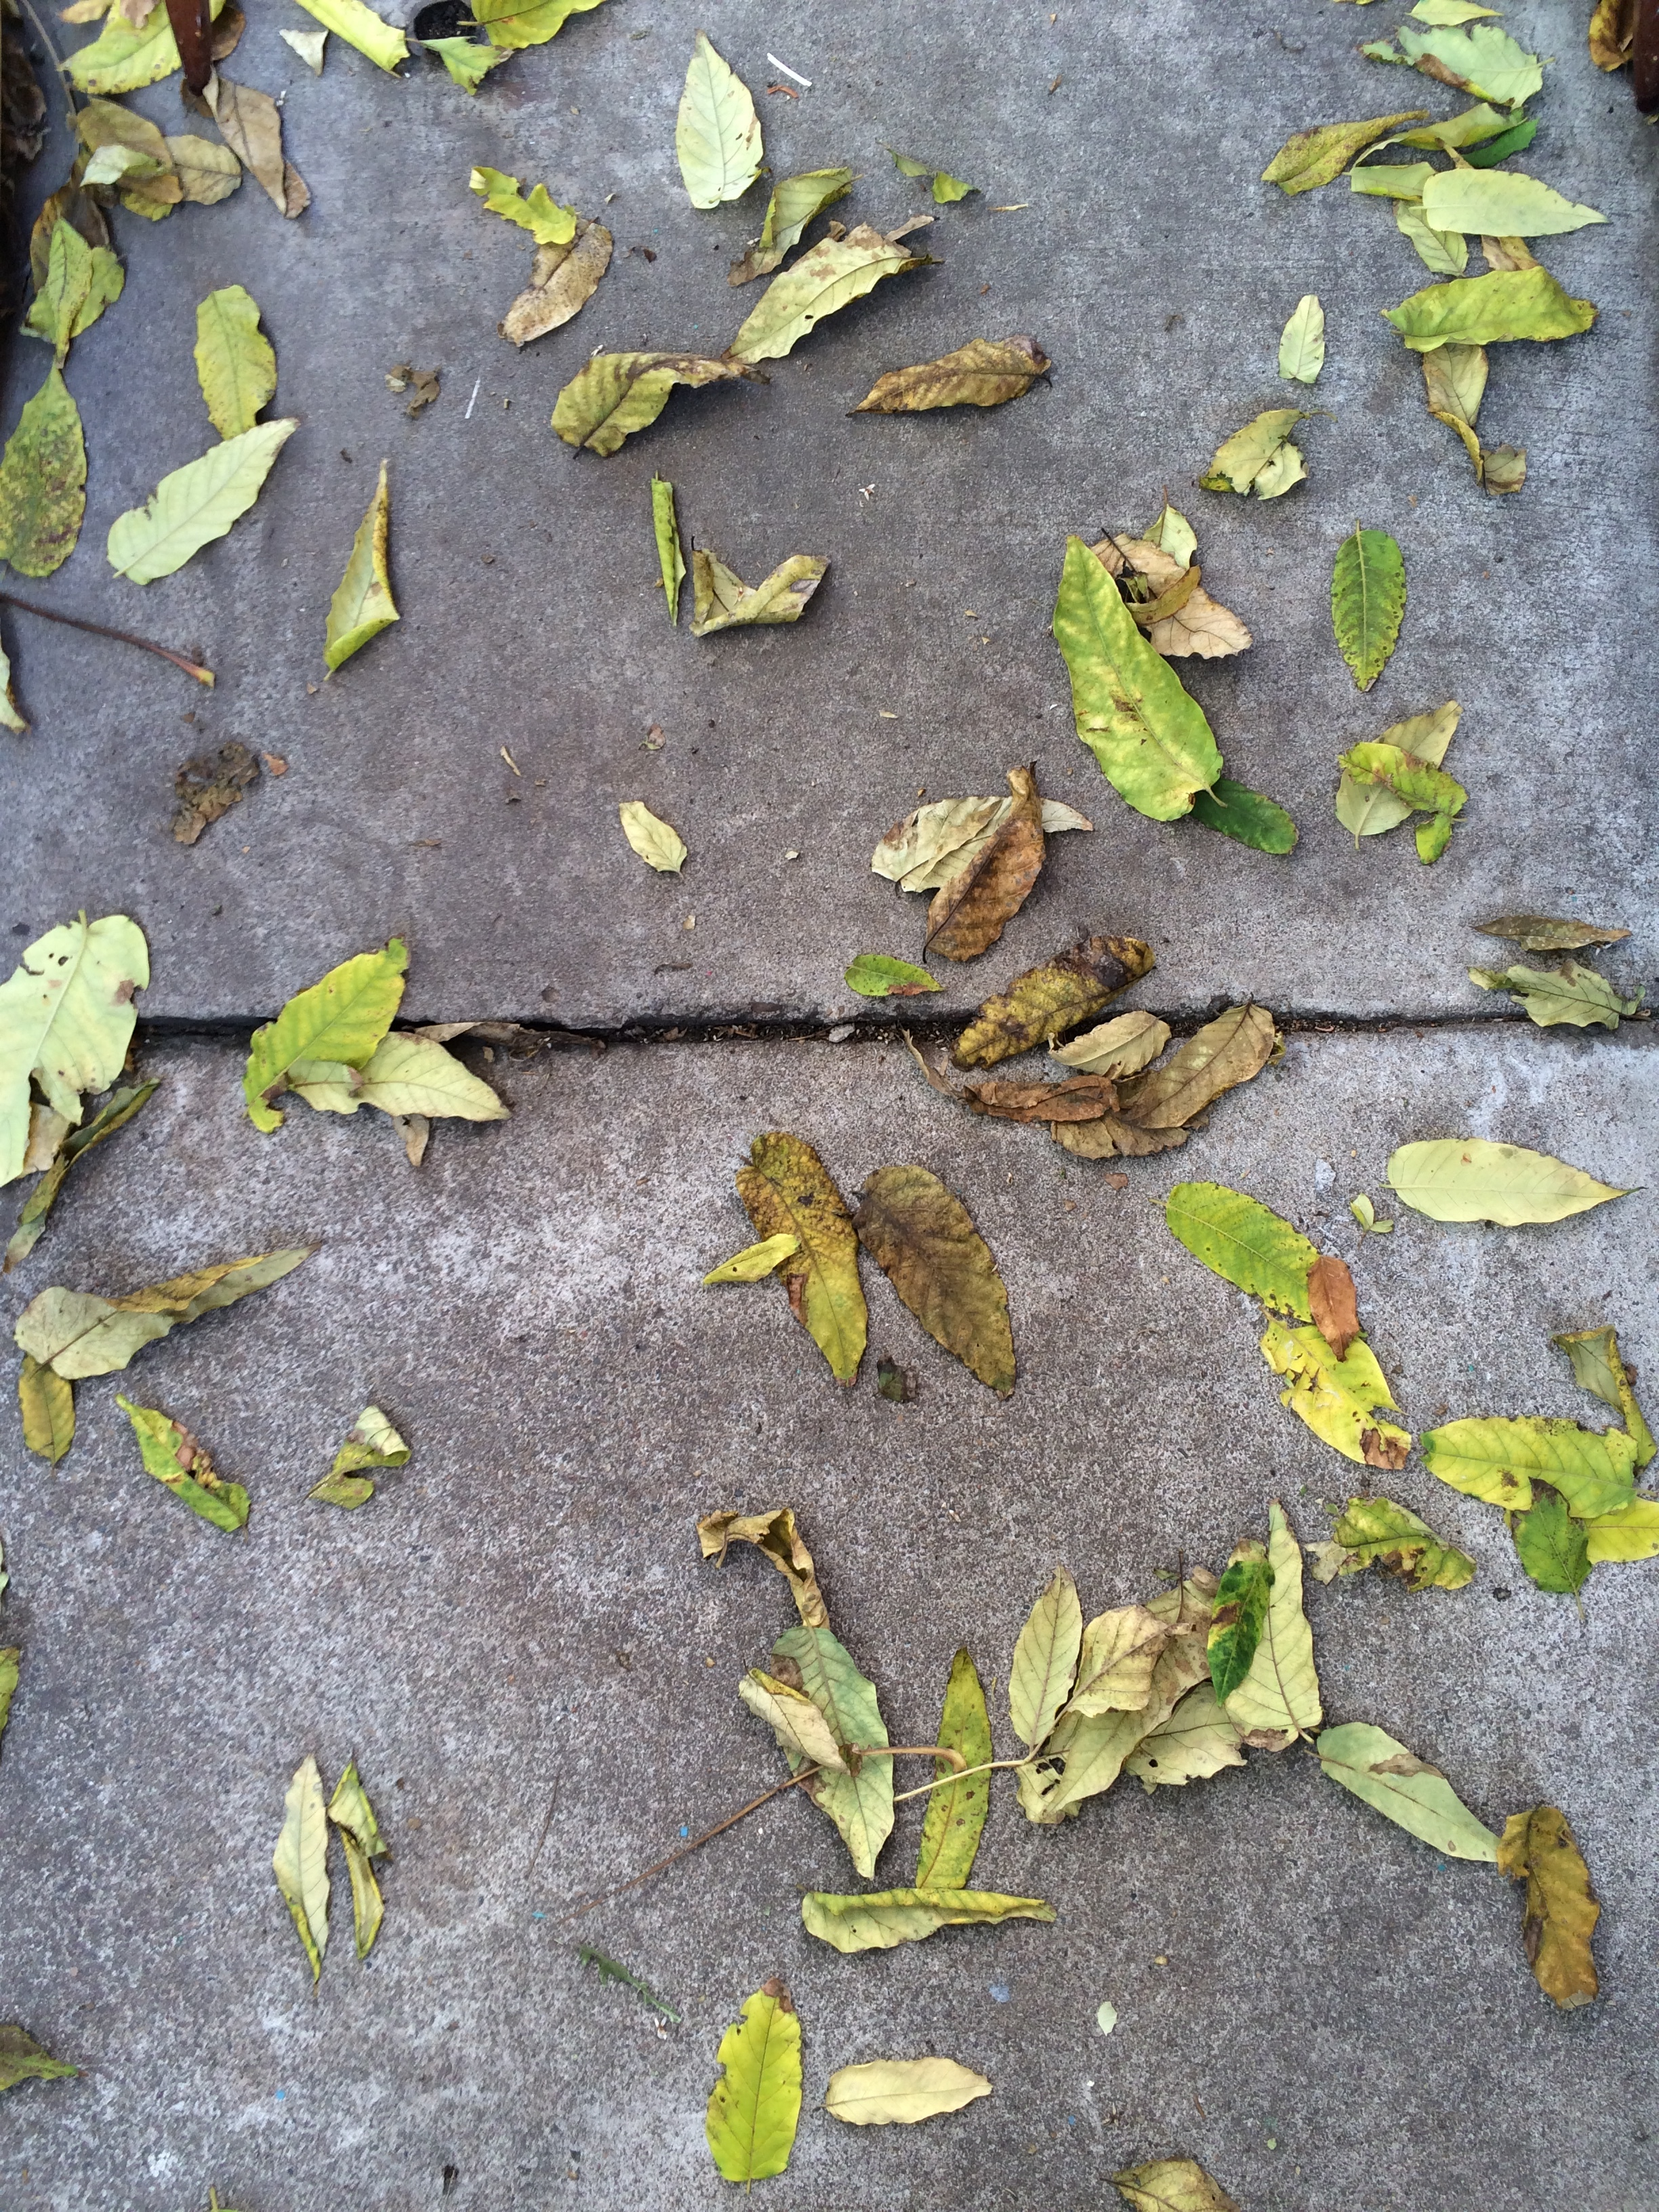 11.16.14_greenfallleaves.JPG